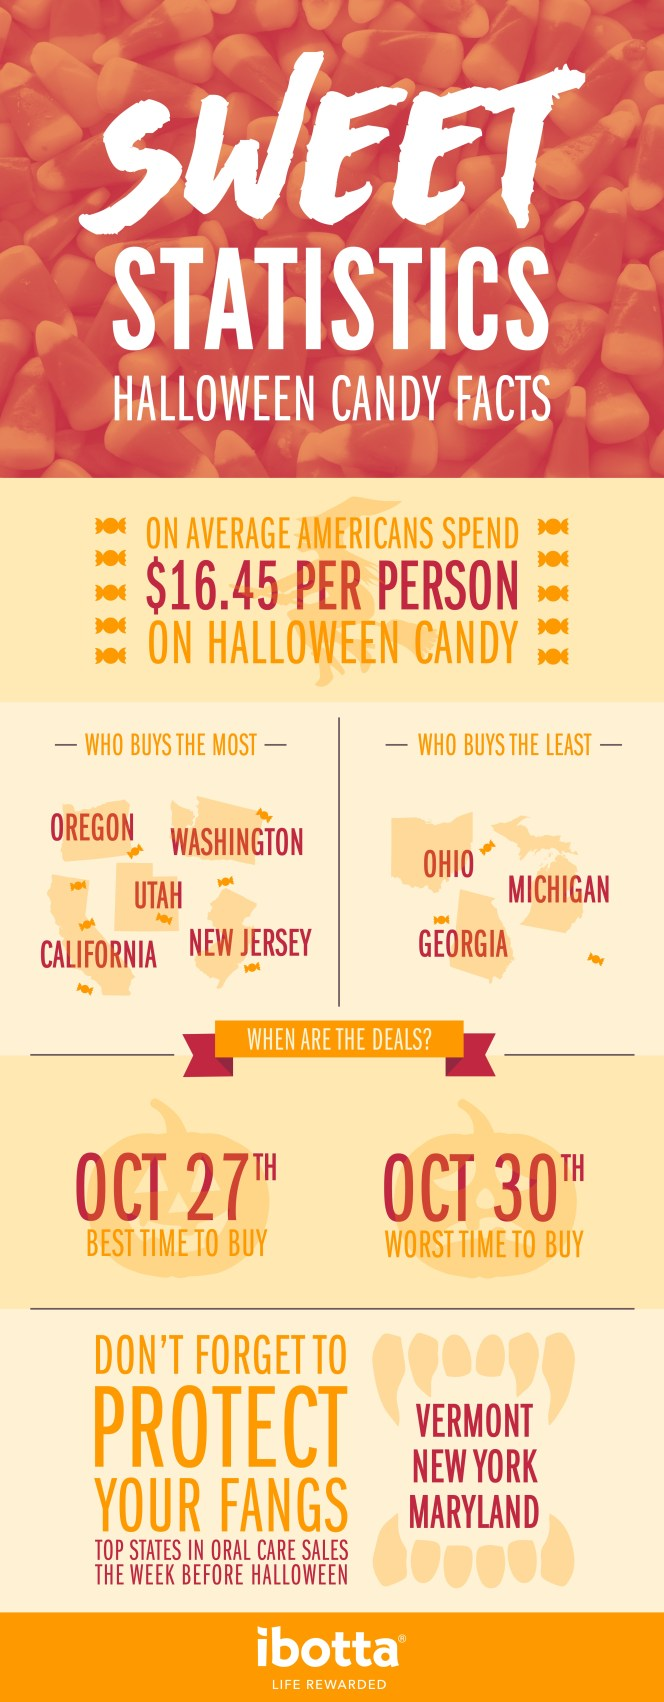 Sweet Statistics Halloween Candy Facts